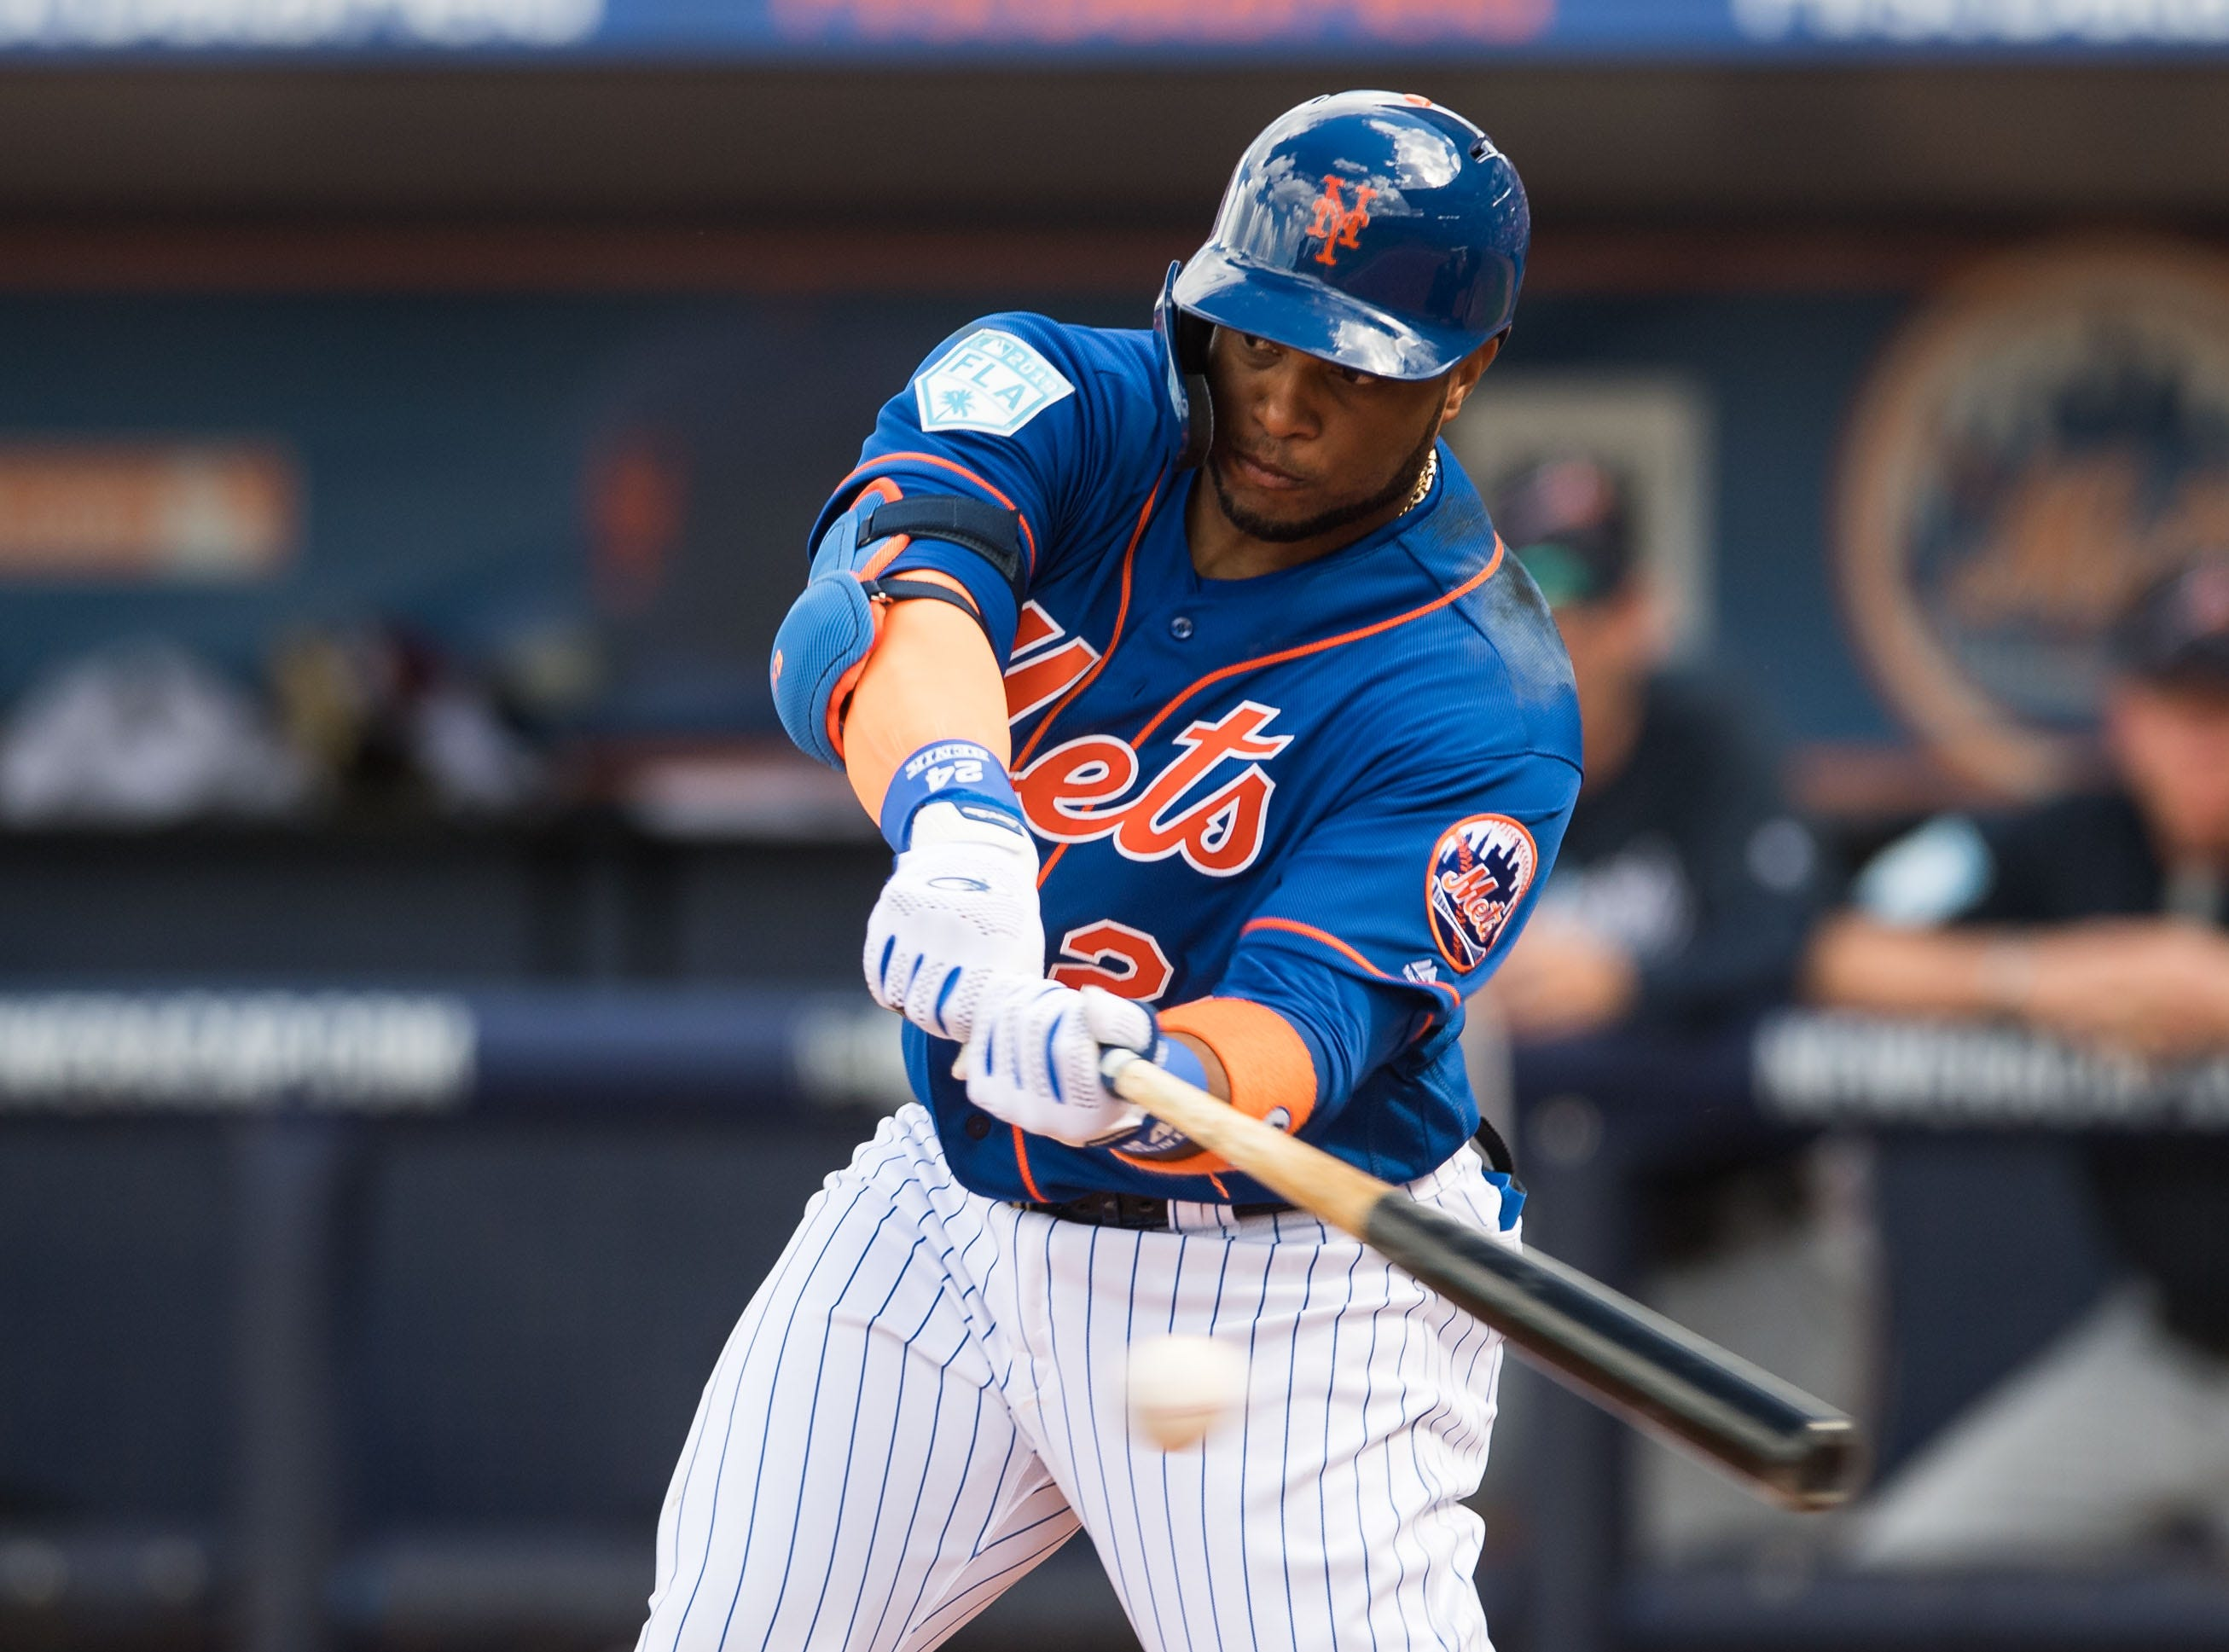 New York Mets infielder Robinson Canó bats against the Atlanta Braves during their first spring training game Saturday, Feb. 23, 2019, at First Data Field in Port St. Lucie.